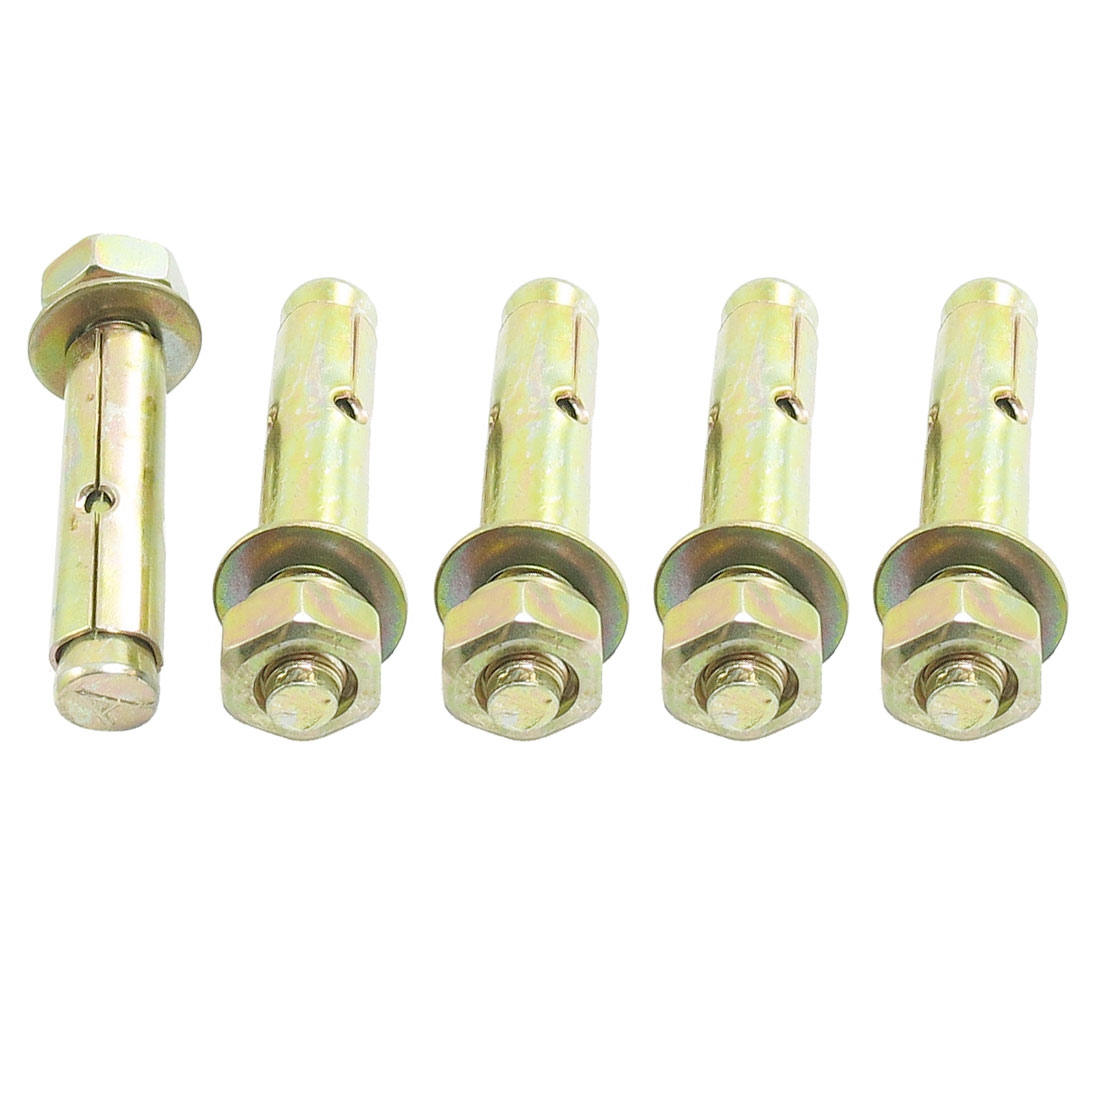 5 Pcs M10 x 70mm Hex Nut Expansion Bolt Sleeve Anchors Tool